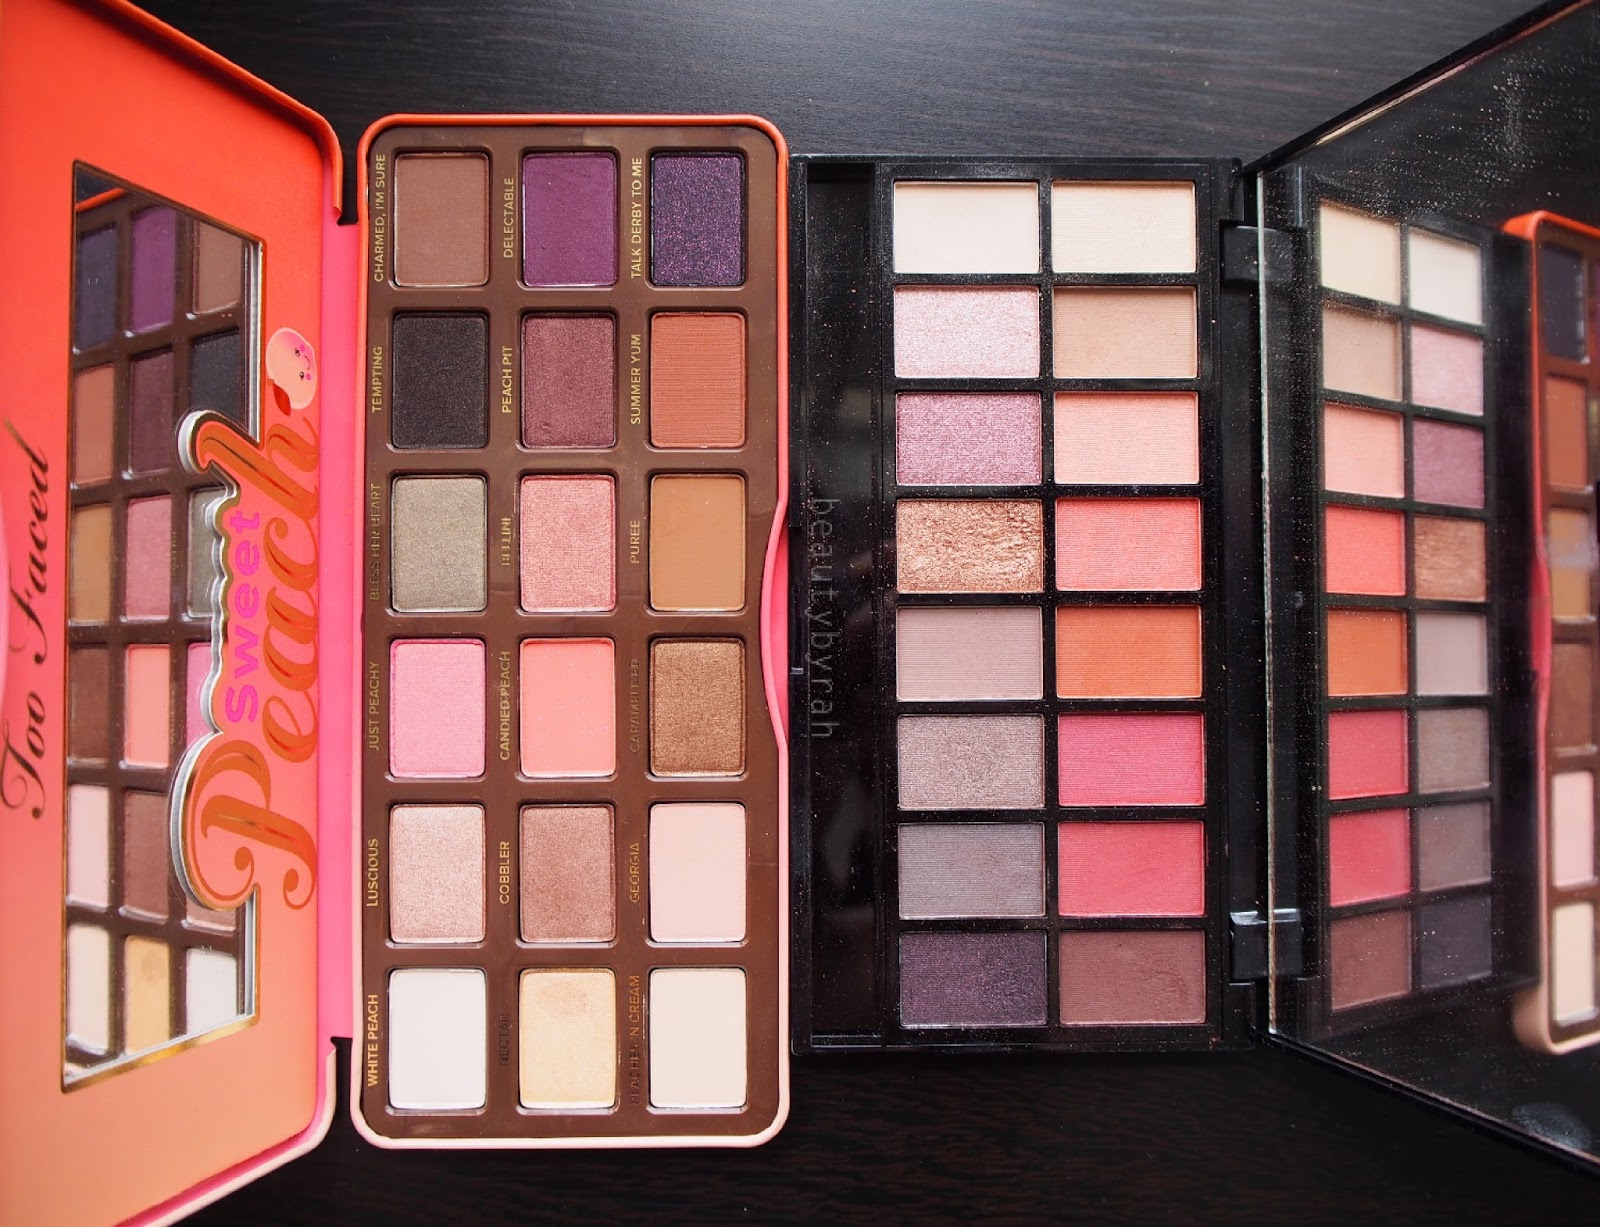 Too Faced Sweet Peach palette dupe Makeup Revolution Neutrals Vs Neutrals Palette